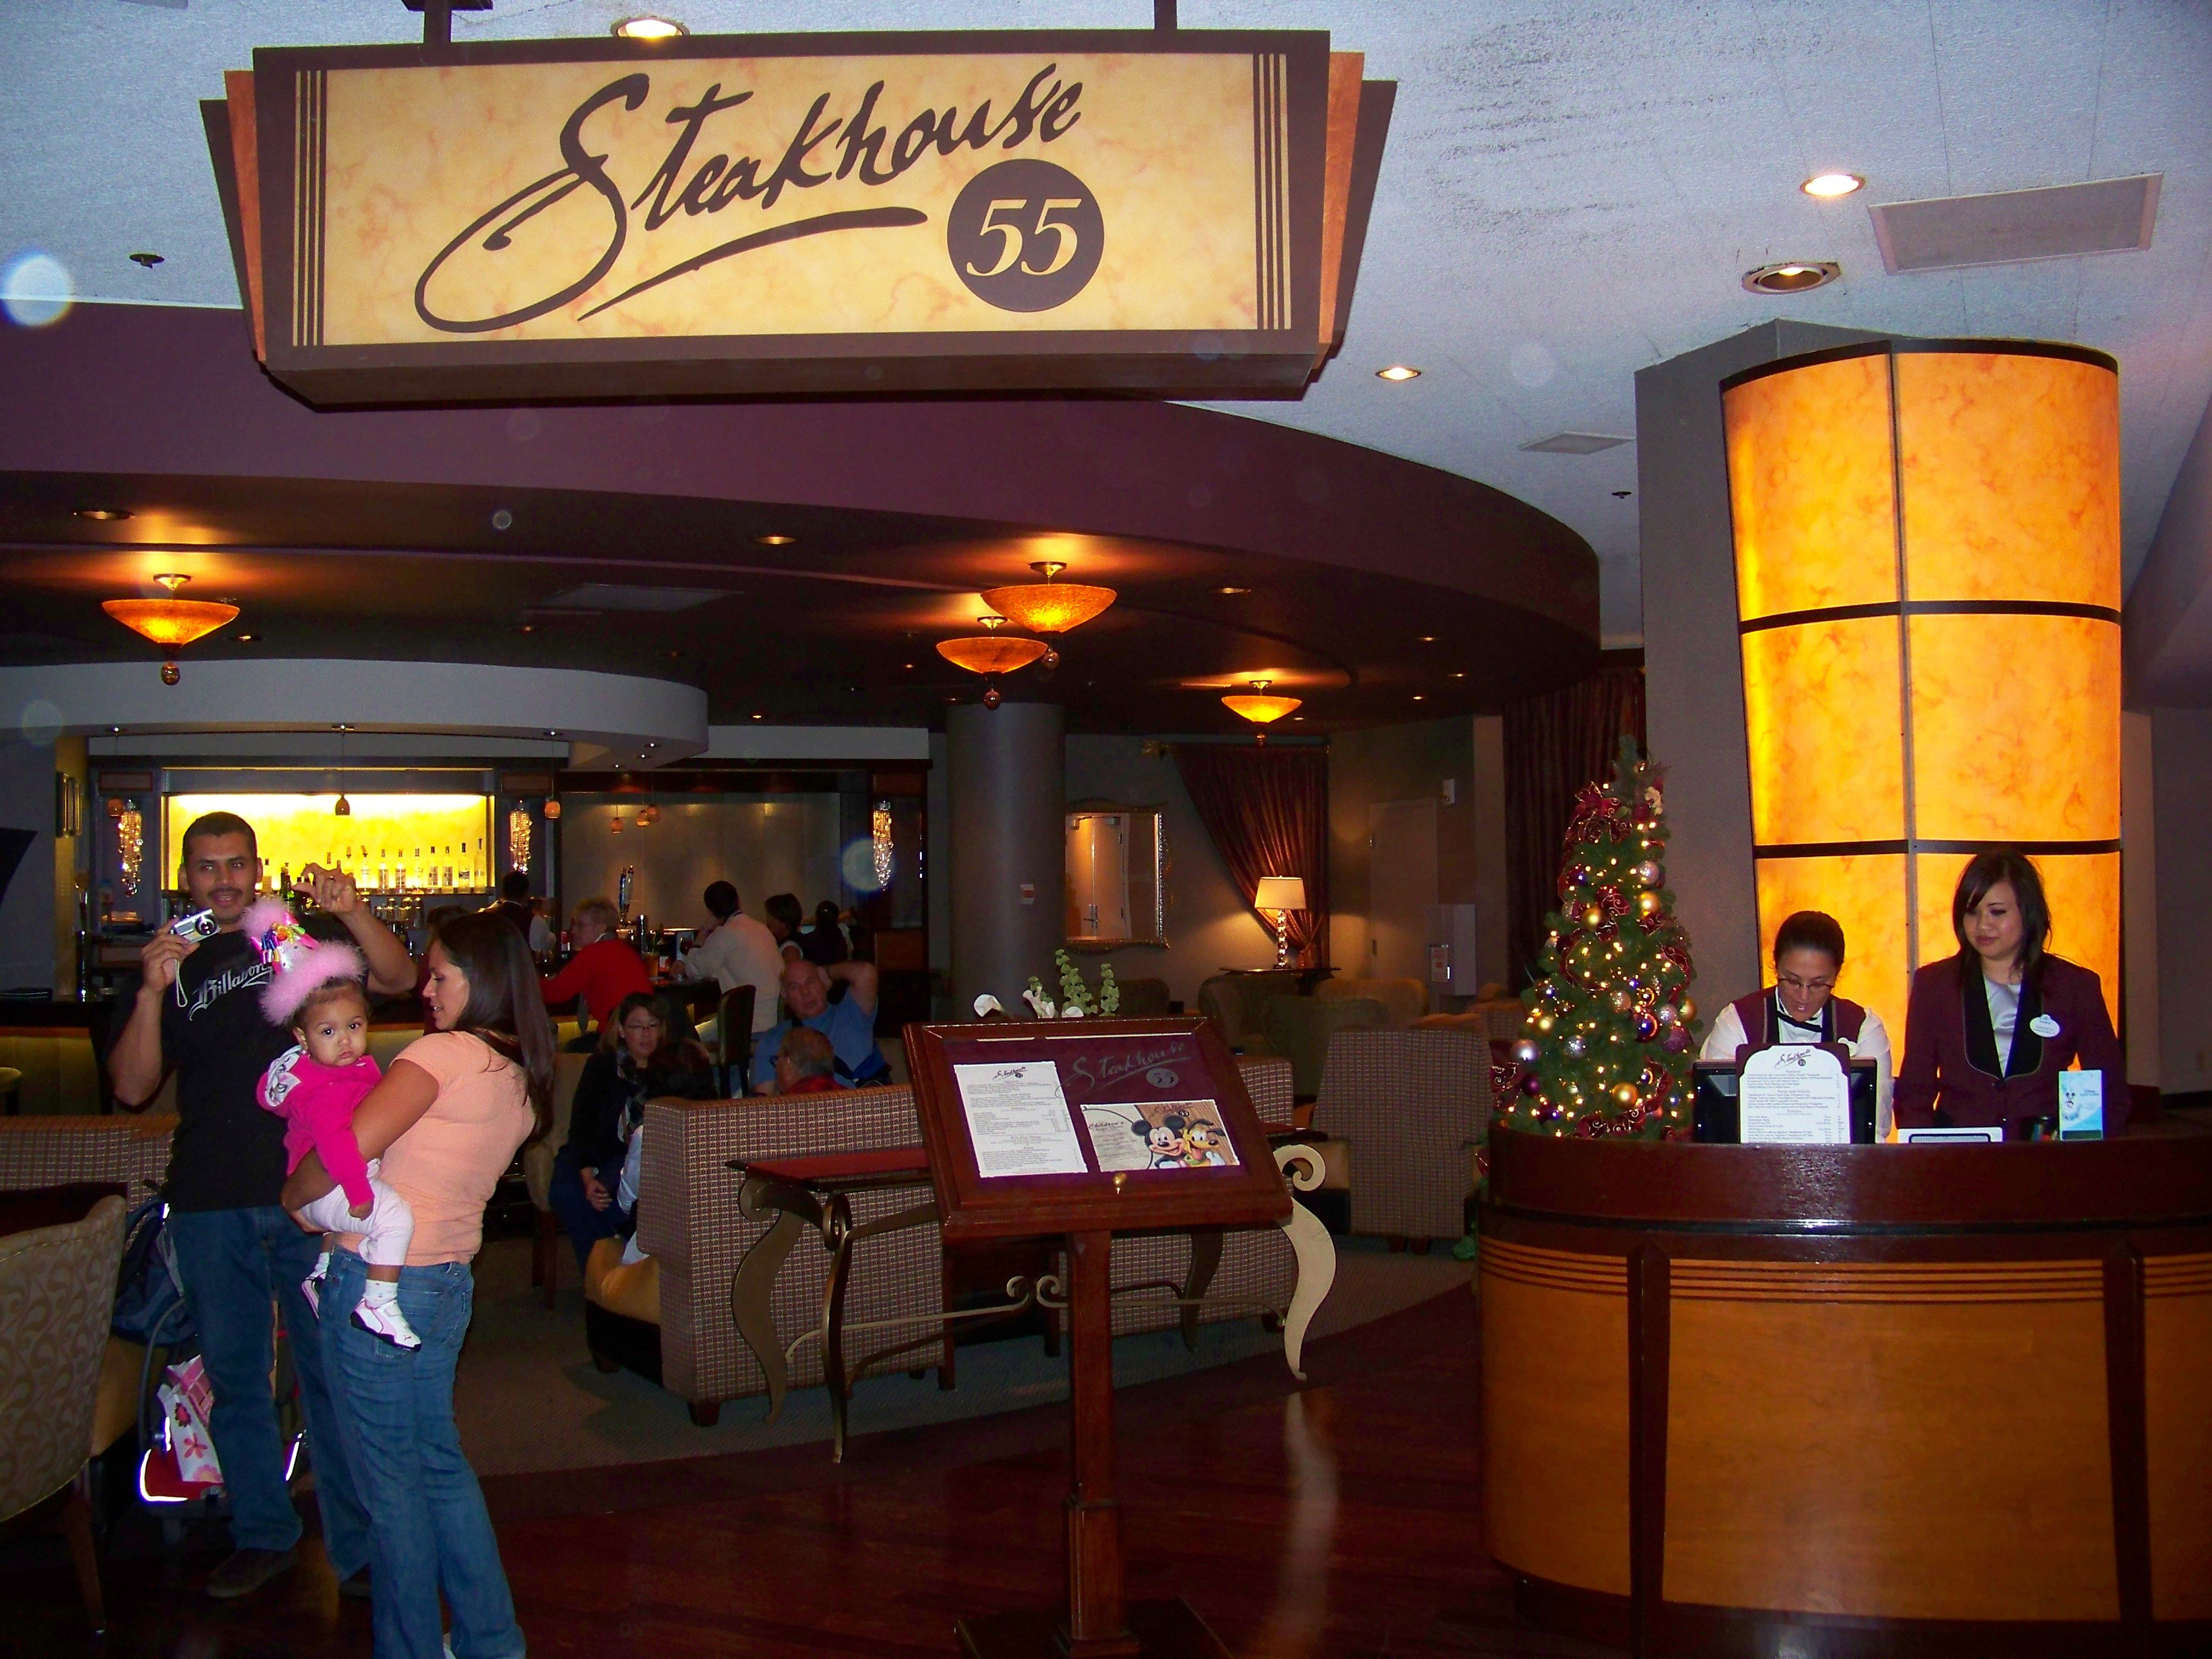 Entrada de Steadkhouse 55 en Disneyland Resort